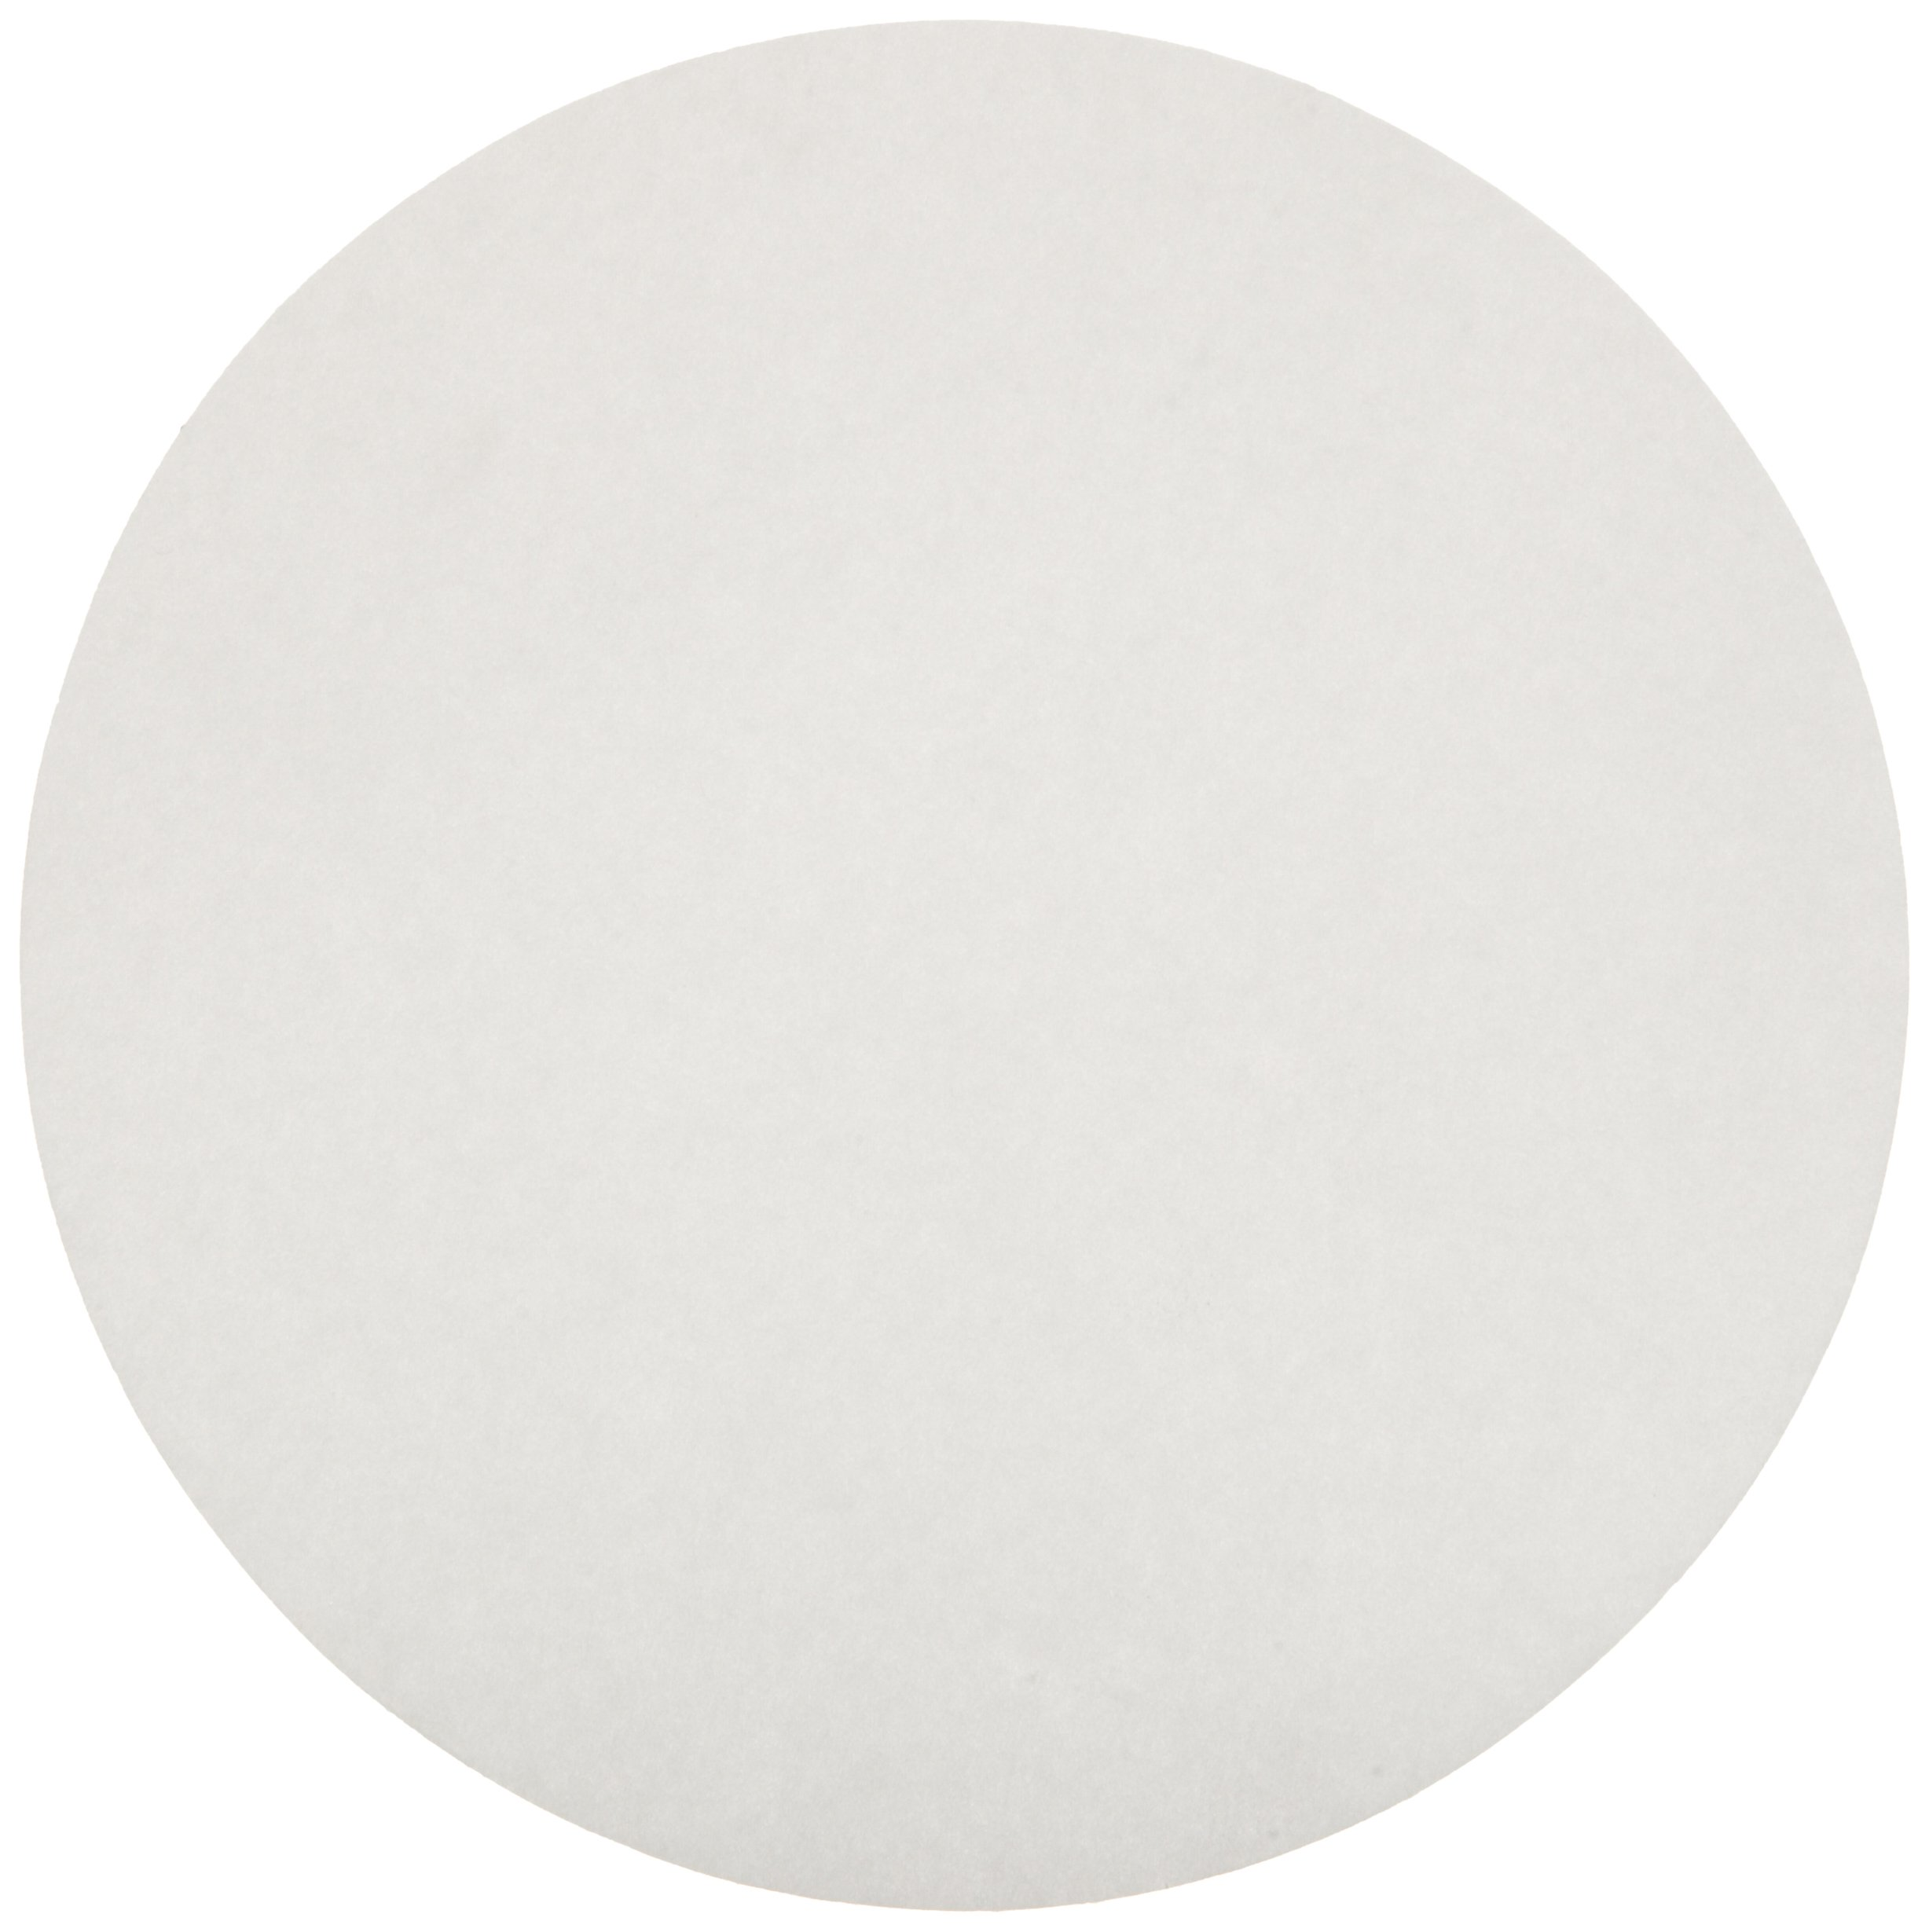 Ahlstrom 6310-1500 Qualitative Filter Paper, 10 Micron, Medium Flow, Grade 631, 15cm Diameter (Pack of 100) by Ahlstrom